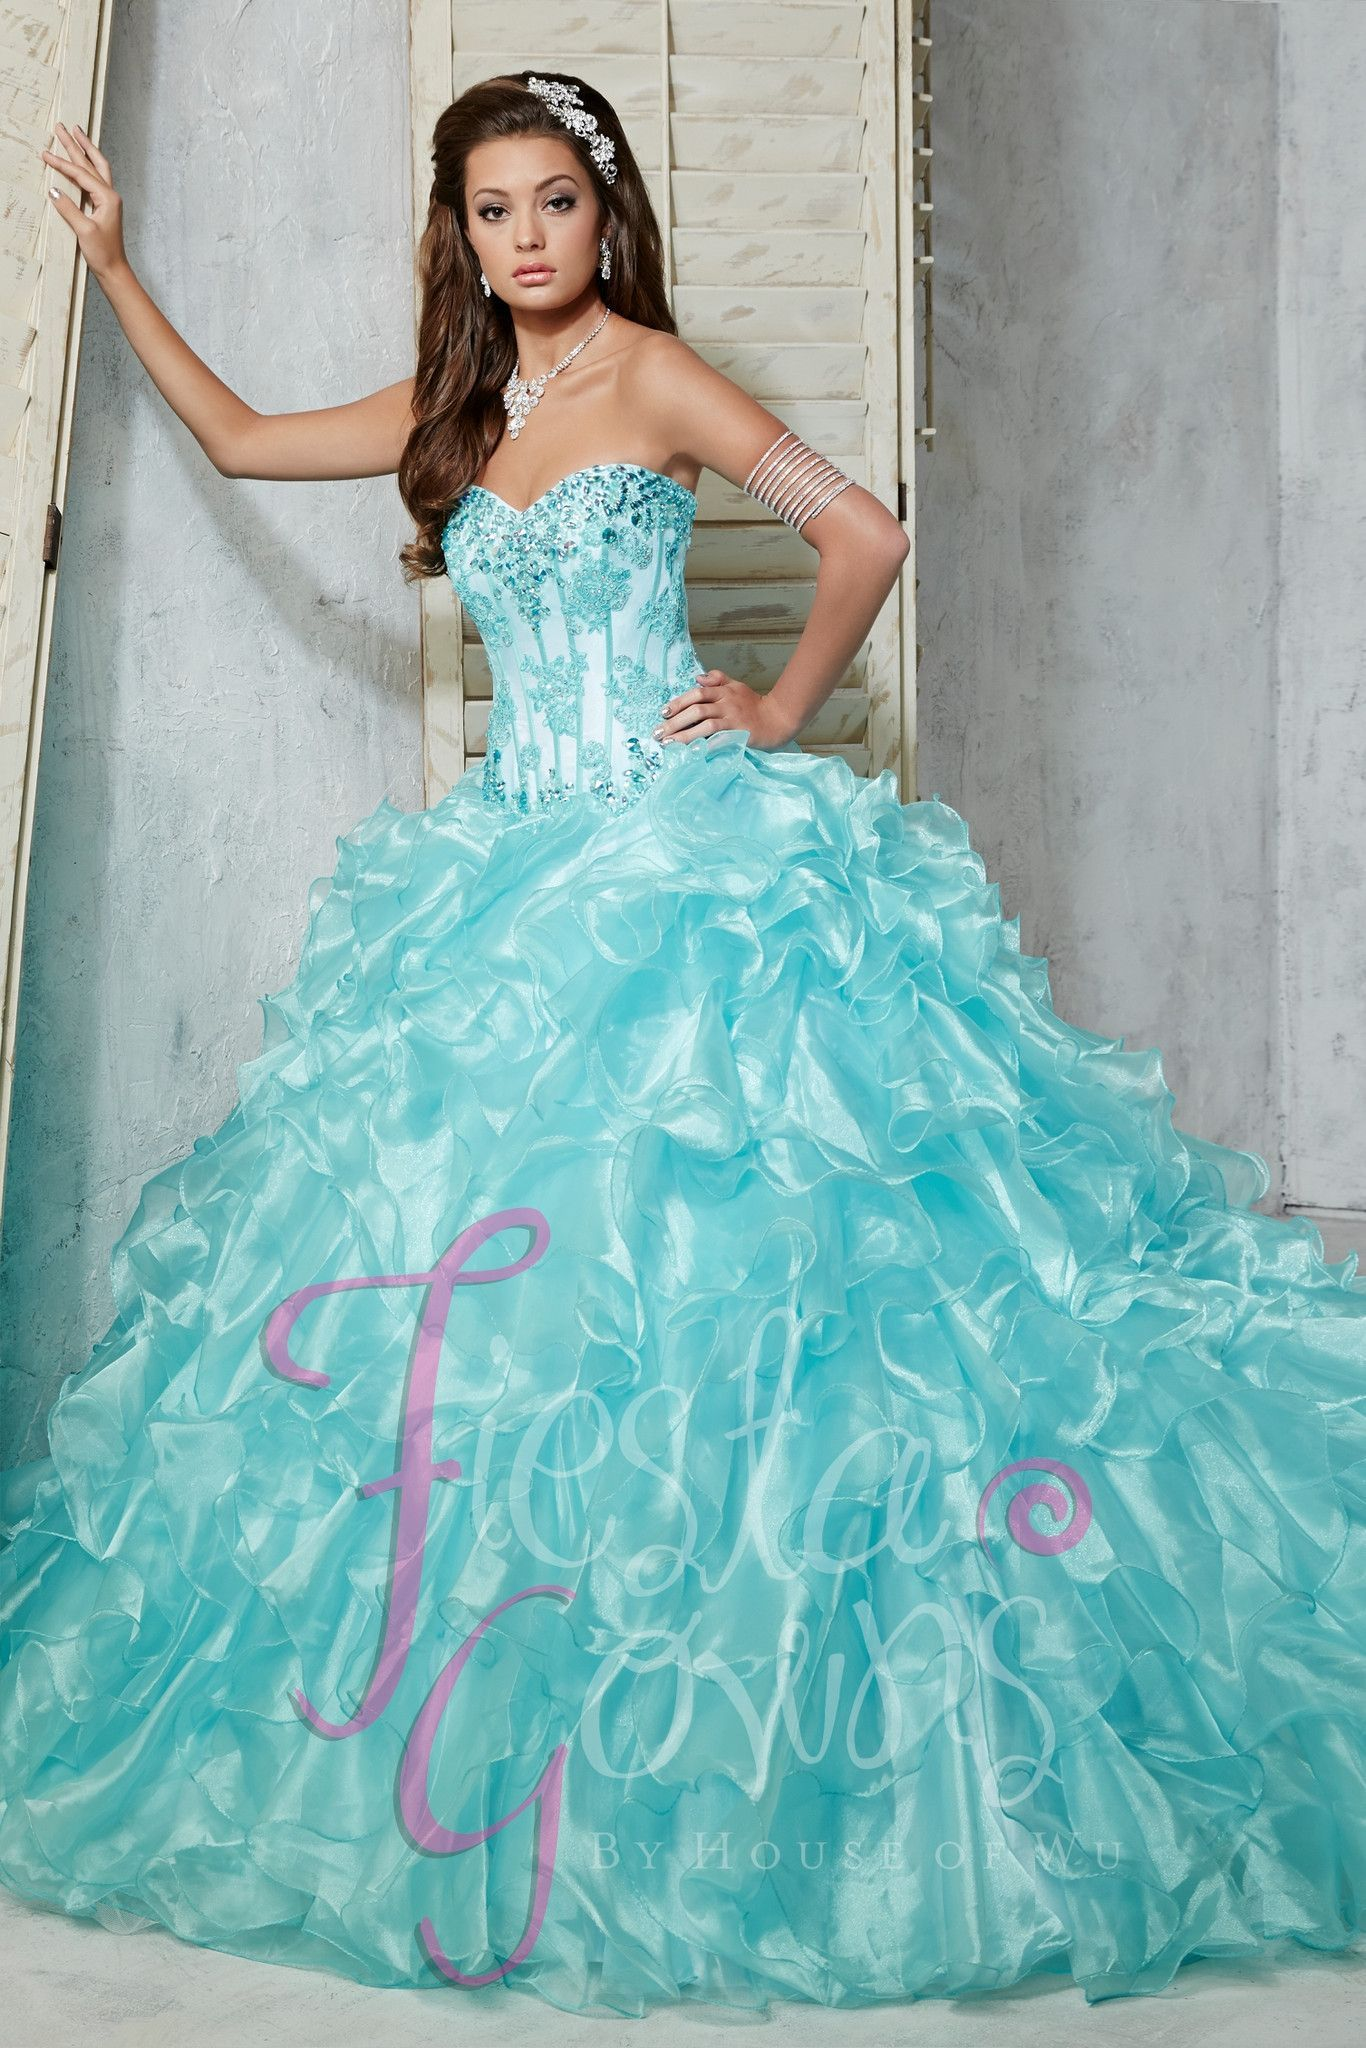 House of Wu Fiesta Gowns Quinceanera Dress Style 56273 | Quinceanera ...